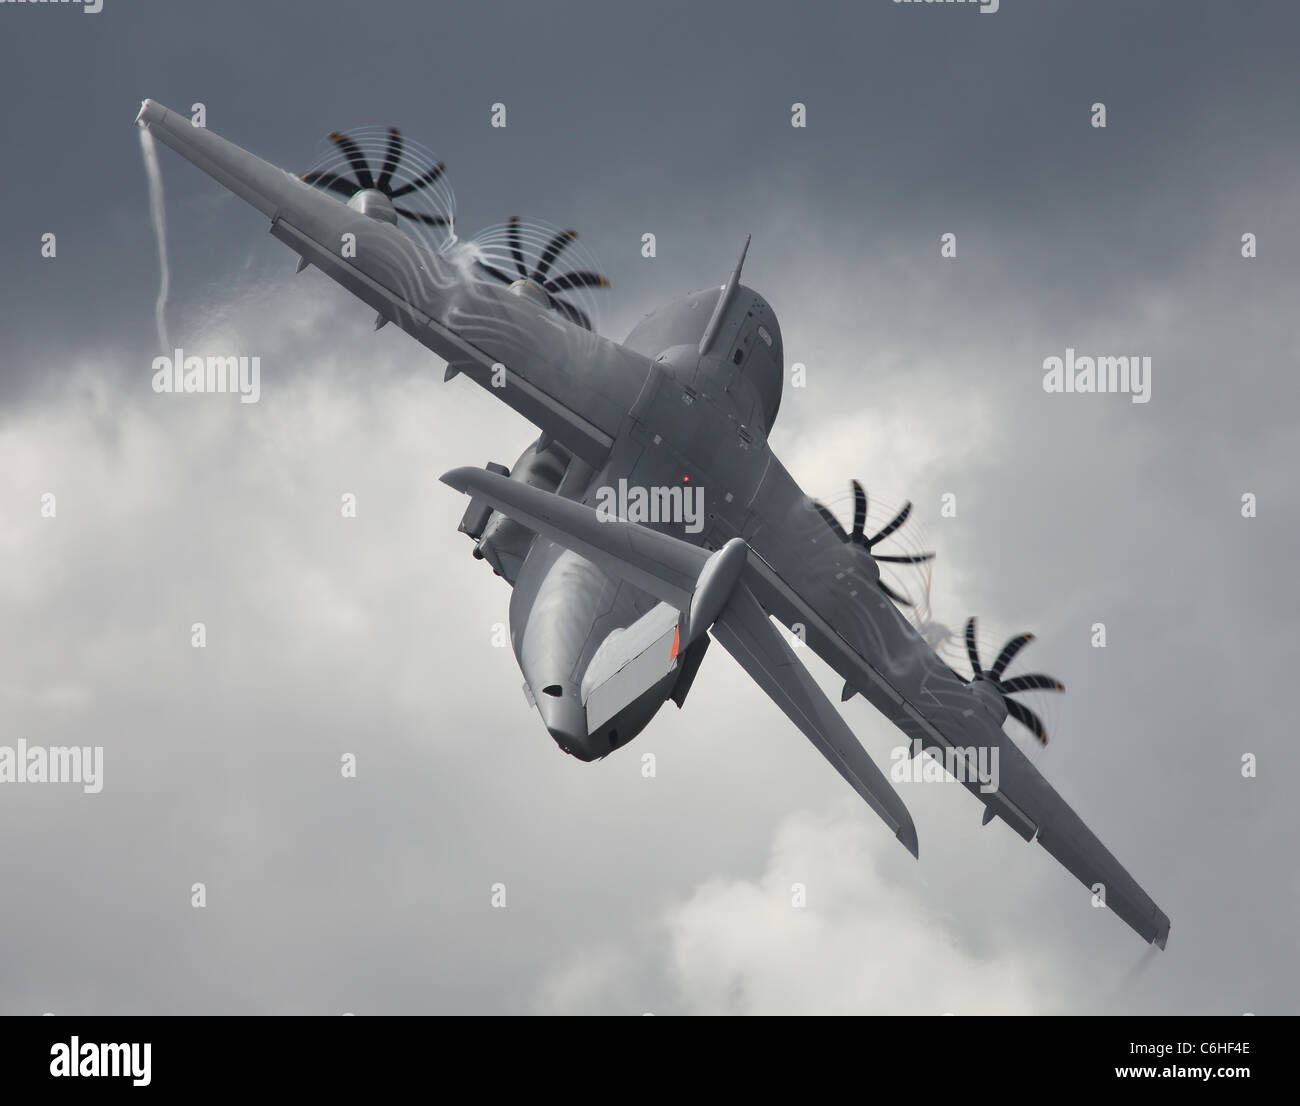 Military Transport Aircraft - Stock Image